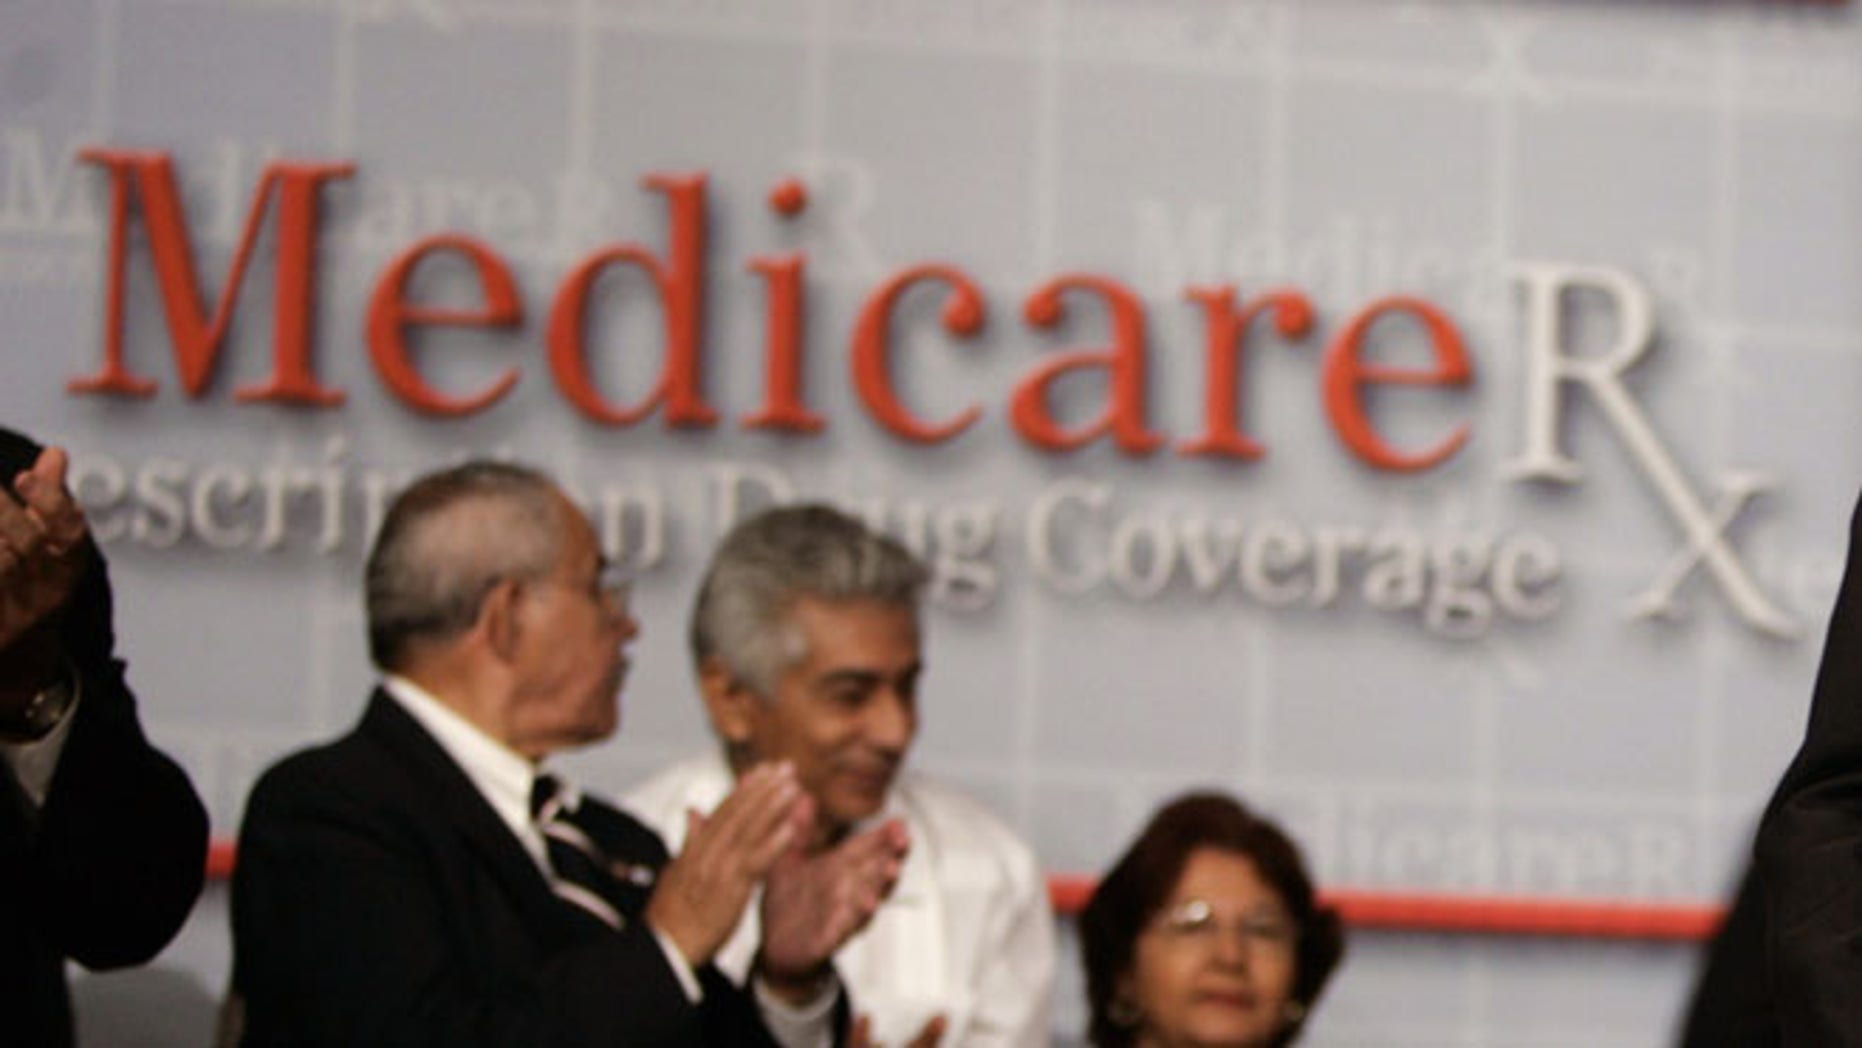 FILE: Attendees of a 2006 conversation on the Medicare Prescription Drug Benefit at the Asociacion Borinquena de Florida Central in Orlando, Fla.